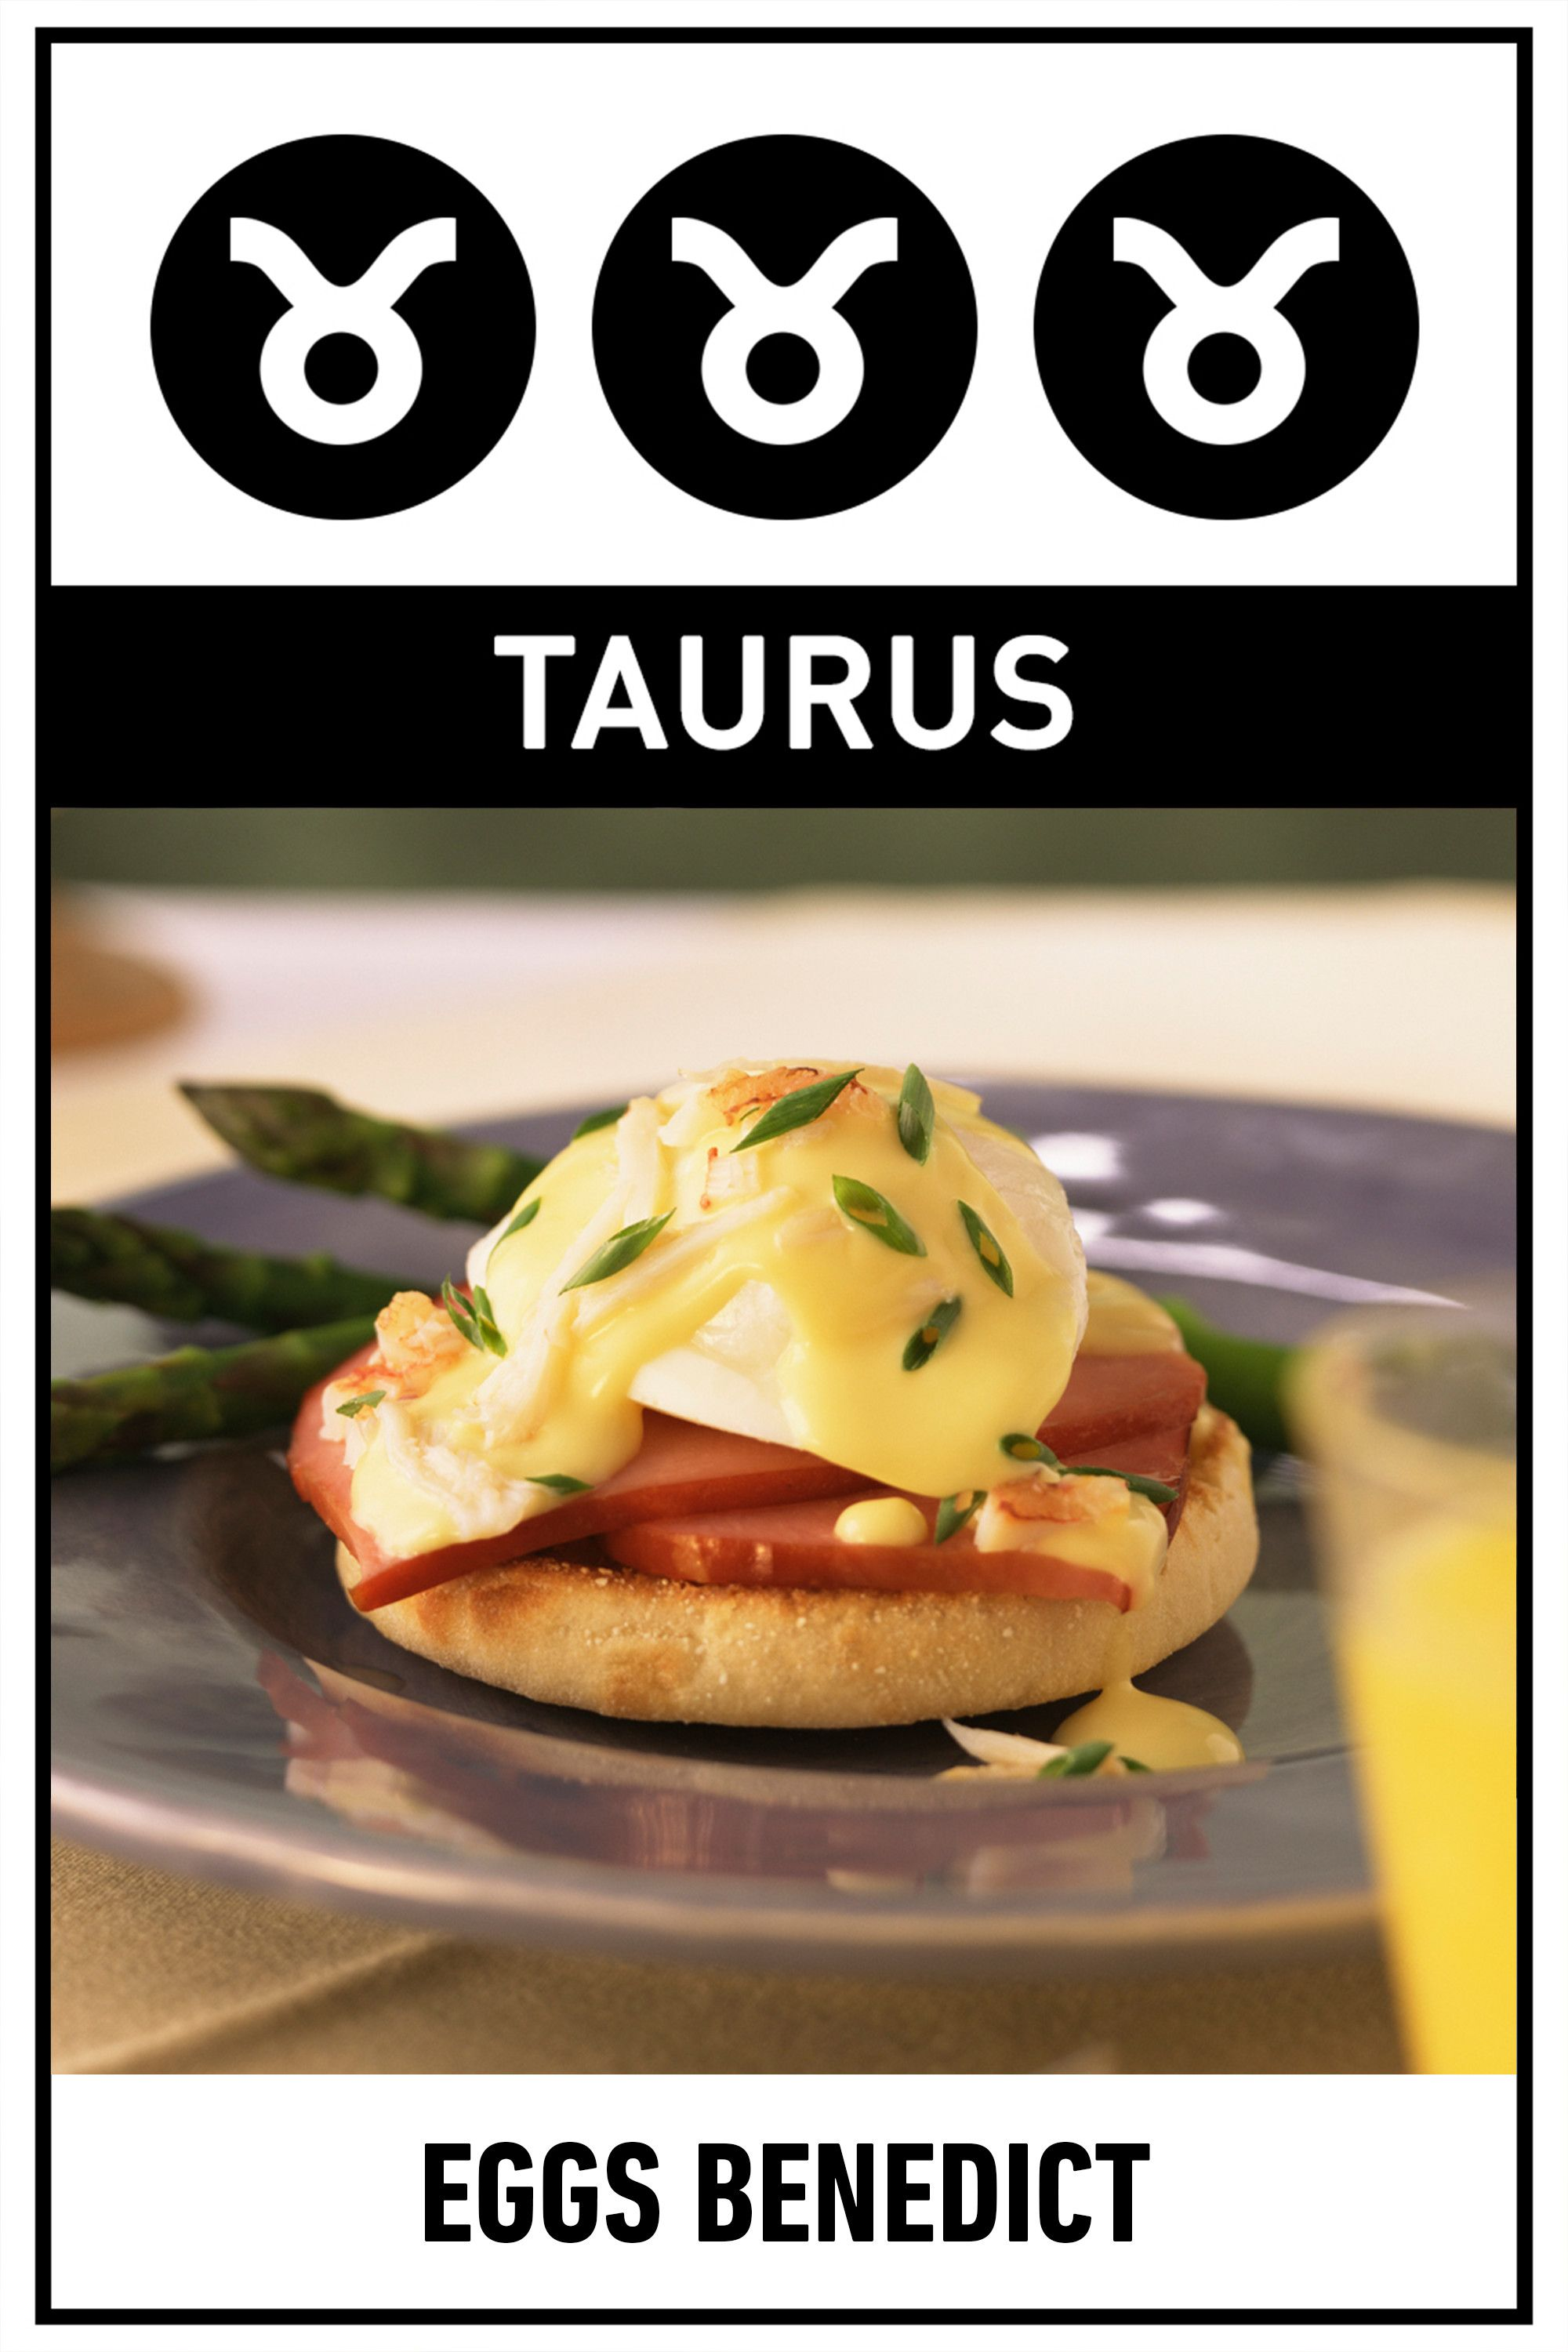 "<p><strong>Your Perfect Breakfast:</strong> Eggs Benedict</p><p><strong>Why:</strong> If you're going out for brunch, you're going to go all out, choosing the most decadent dish on the menu, and for good reason—you don't believe in settling, whether it comes to calories or career choices. </p><p>Get the <a href=""http://www.delish.com/cooking/recipe-ideas/recipes/a29855/light-eggs-benedict-recipes/"">recipe</a>.  </p>"